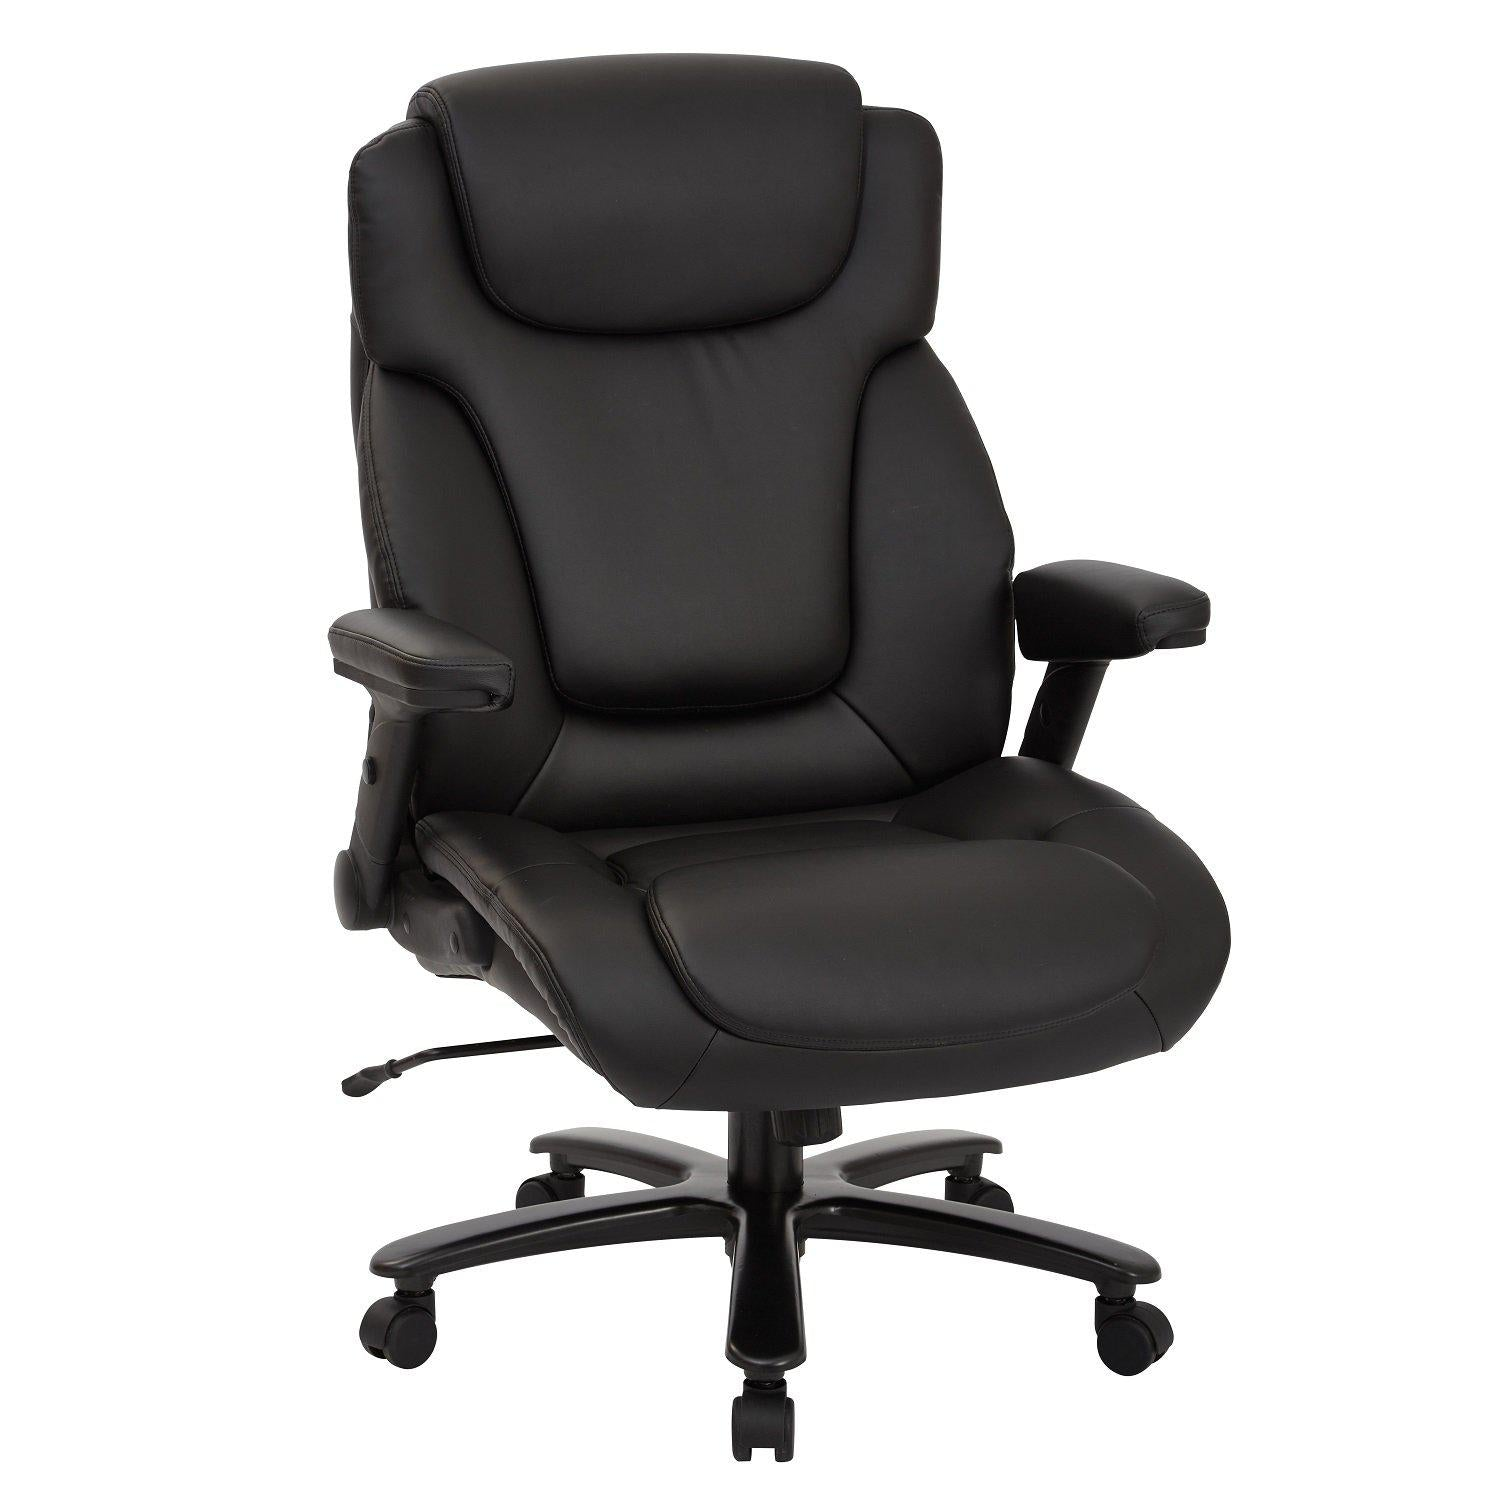 Big and Tall Deluxe High Back Bonded Leather Executive Chair with Padded Flip Arms